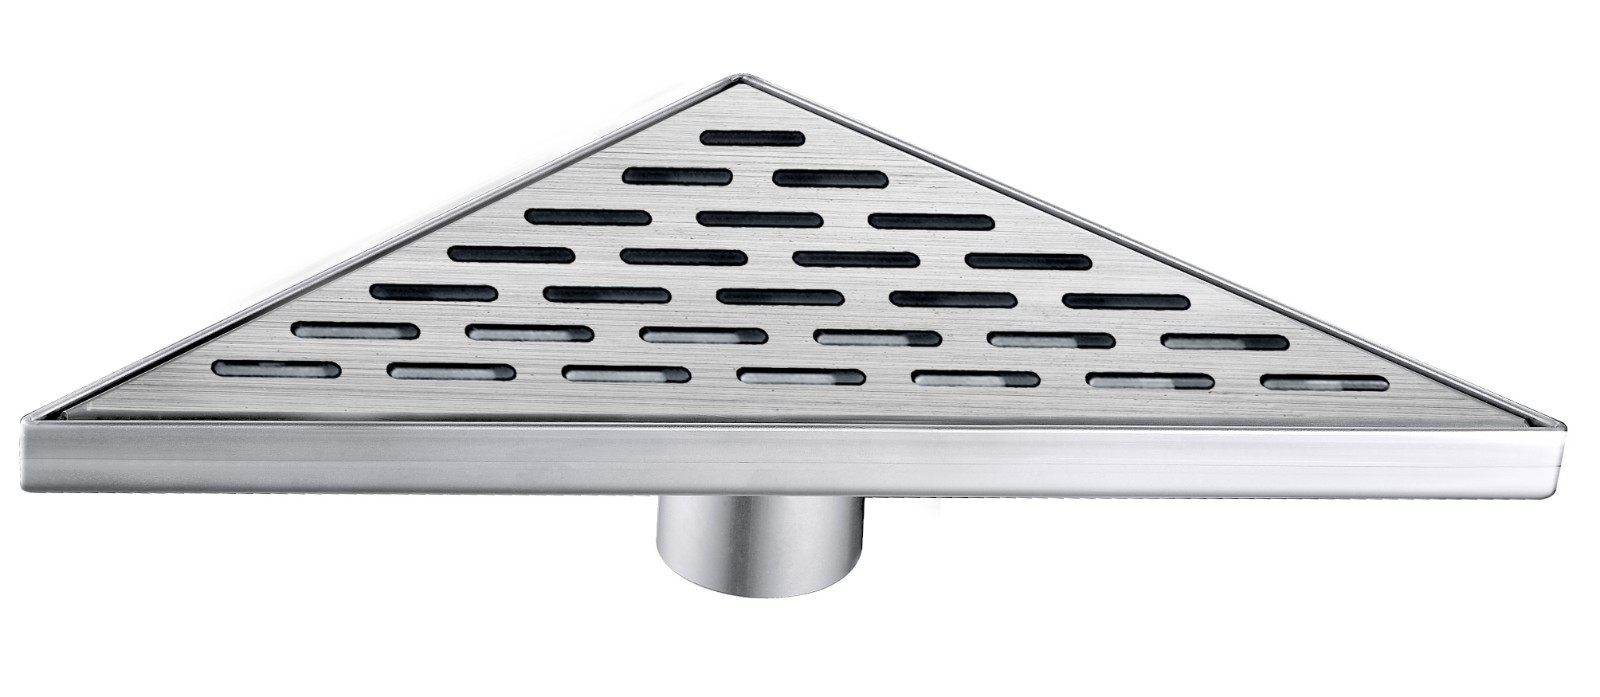 foldable bathroom drain manufacturer for bathroom